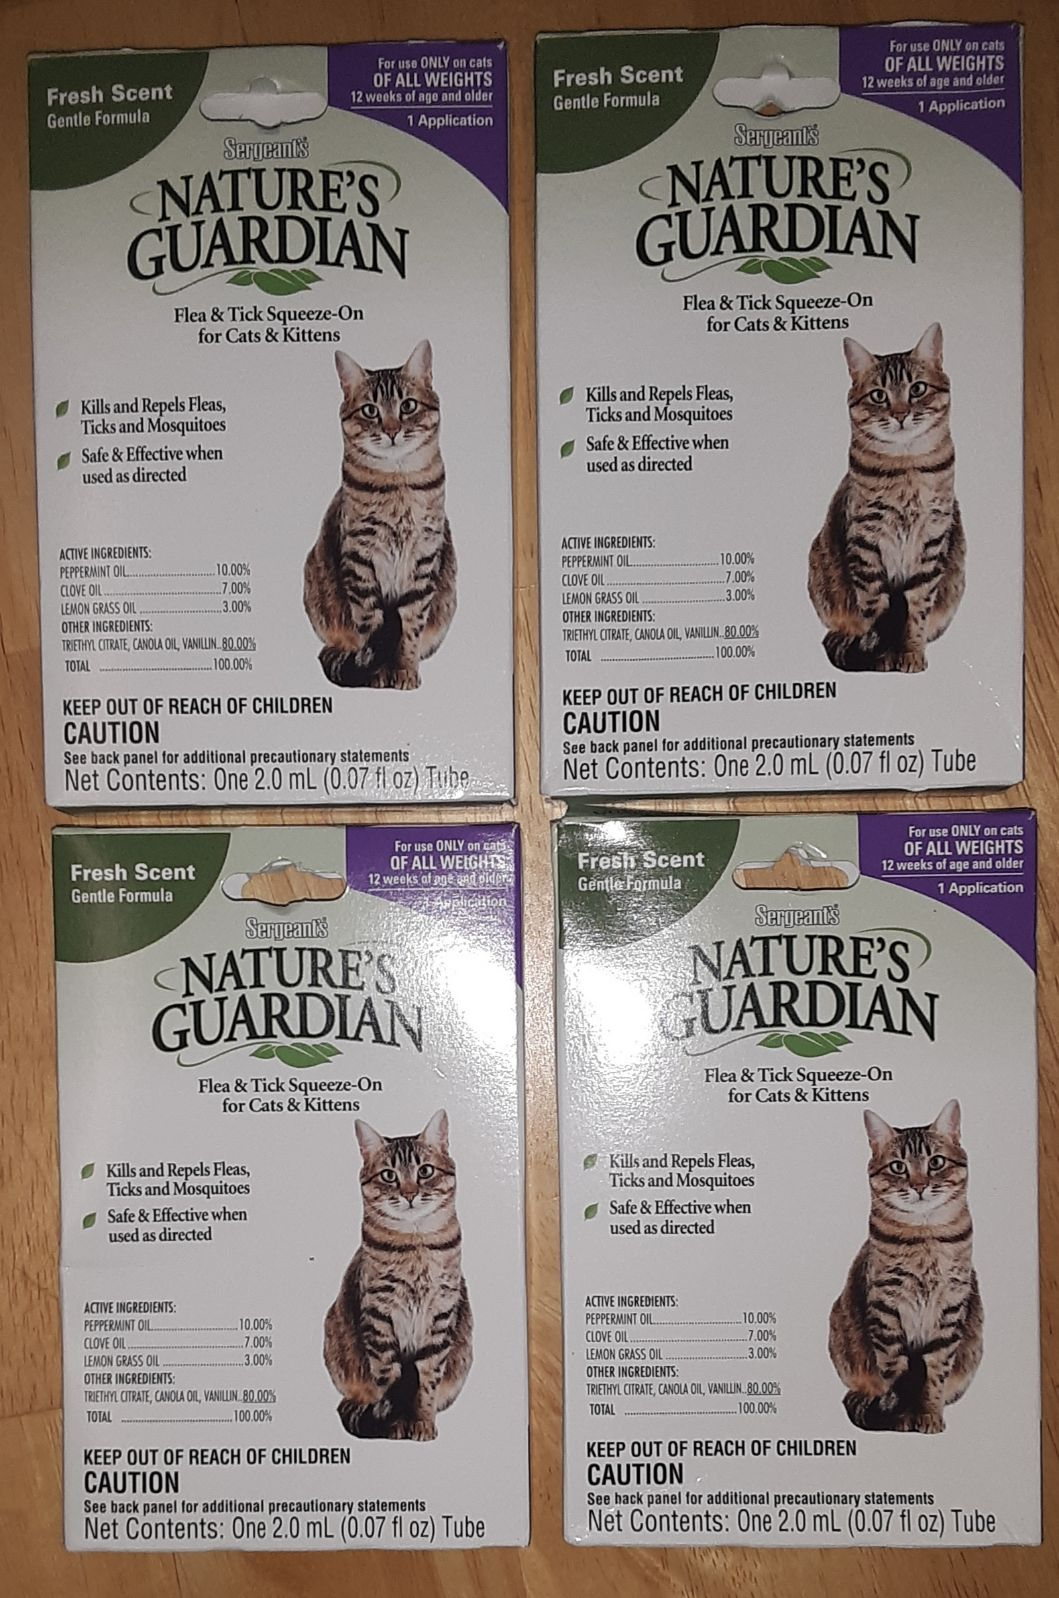 NATURE'S GARDEN FLEA & TICK SQUEEZE